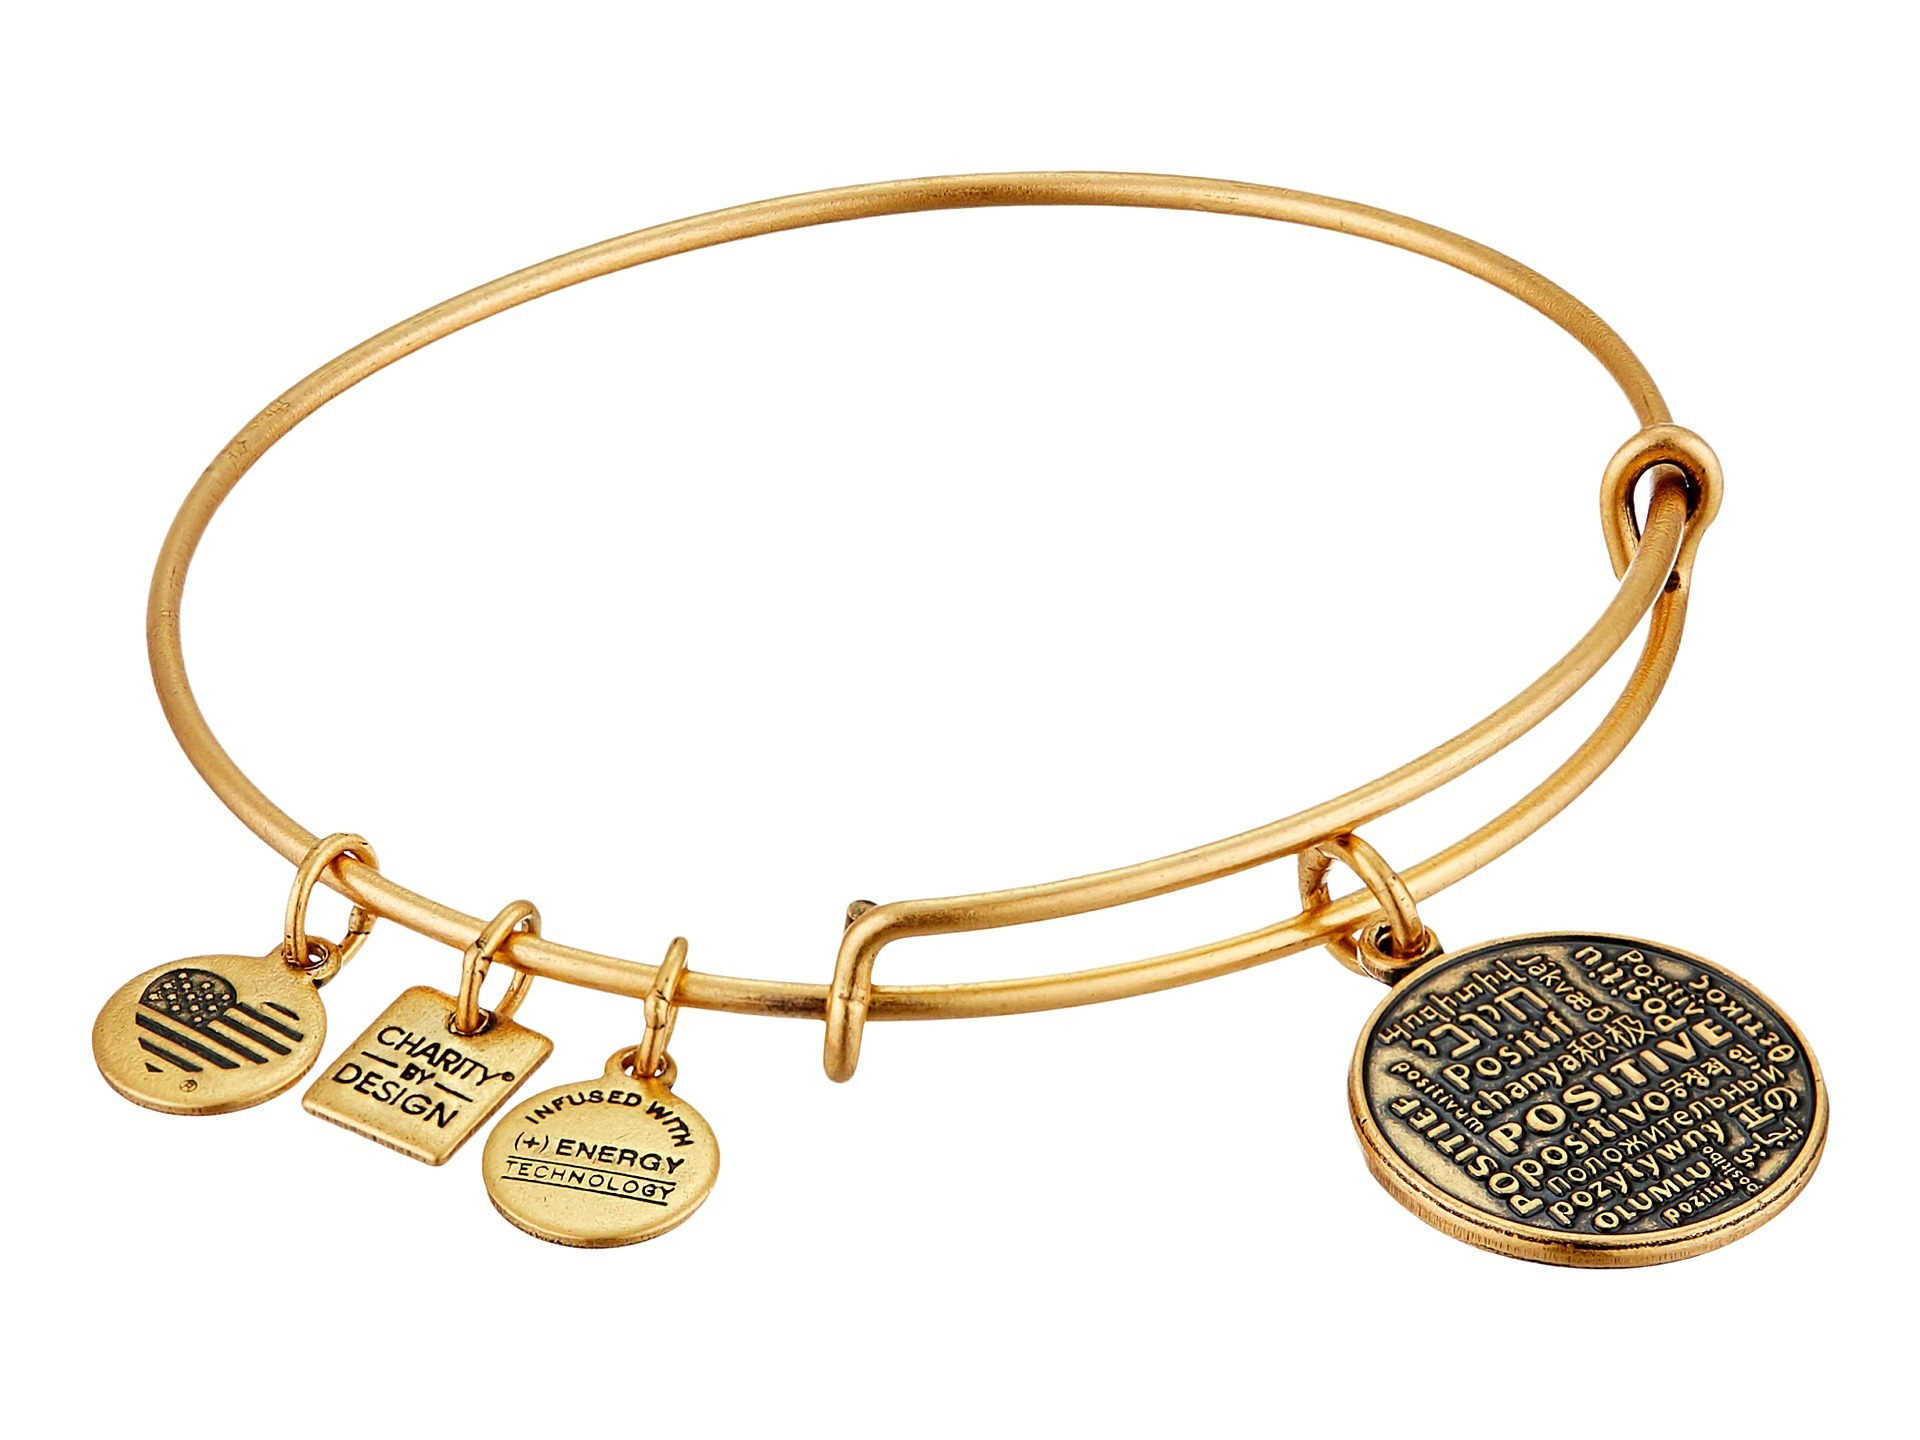 【大人気】Positive Is How I Live Charm Bangle バングル